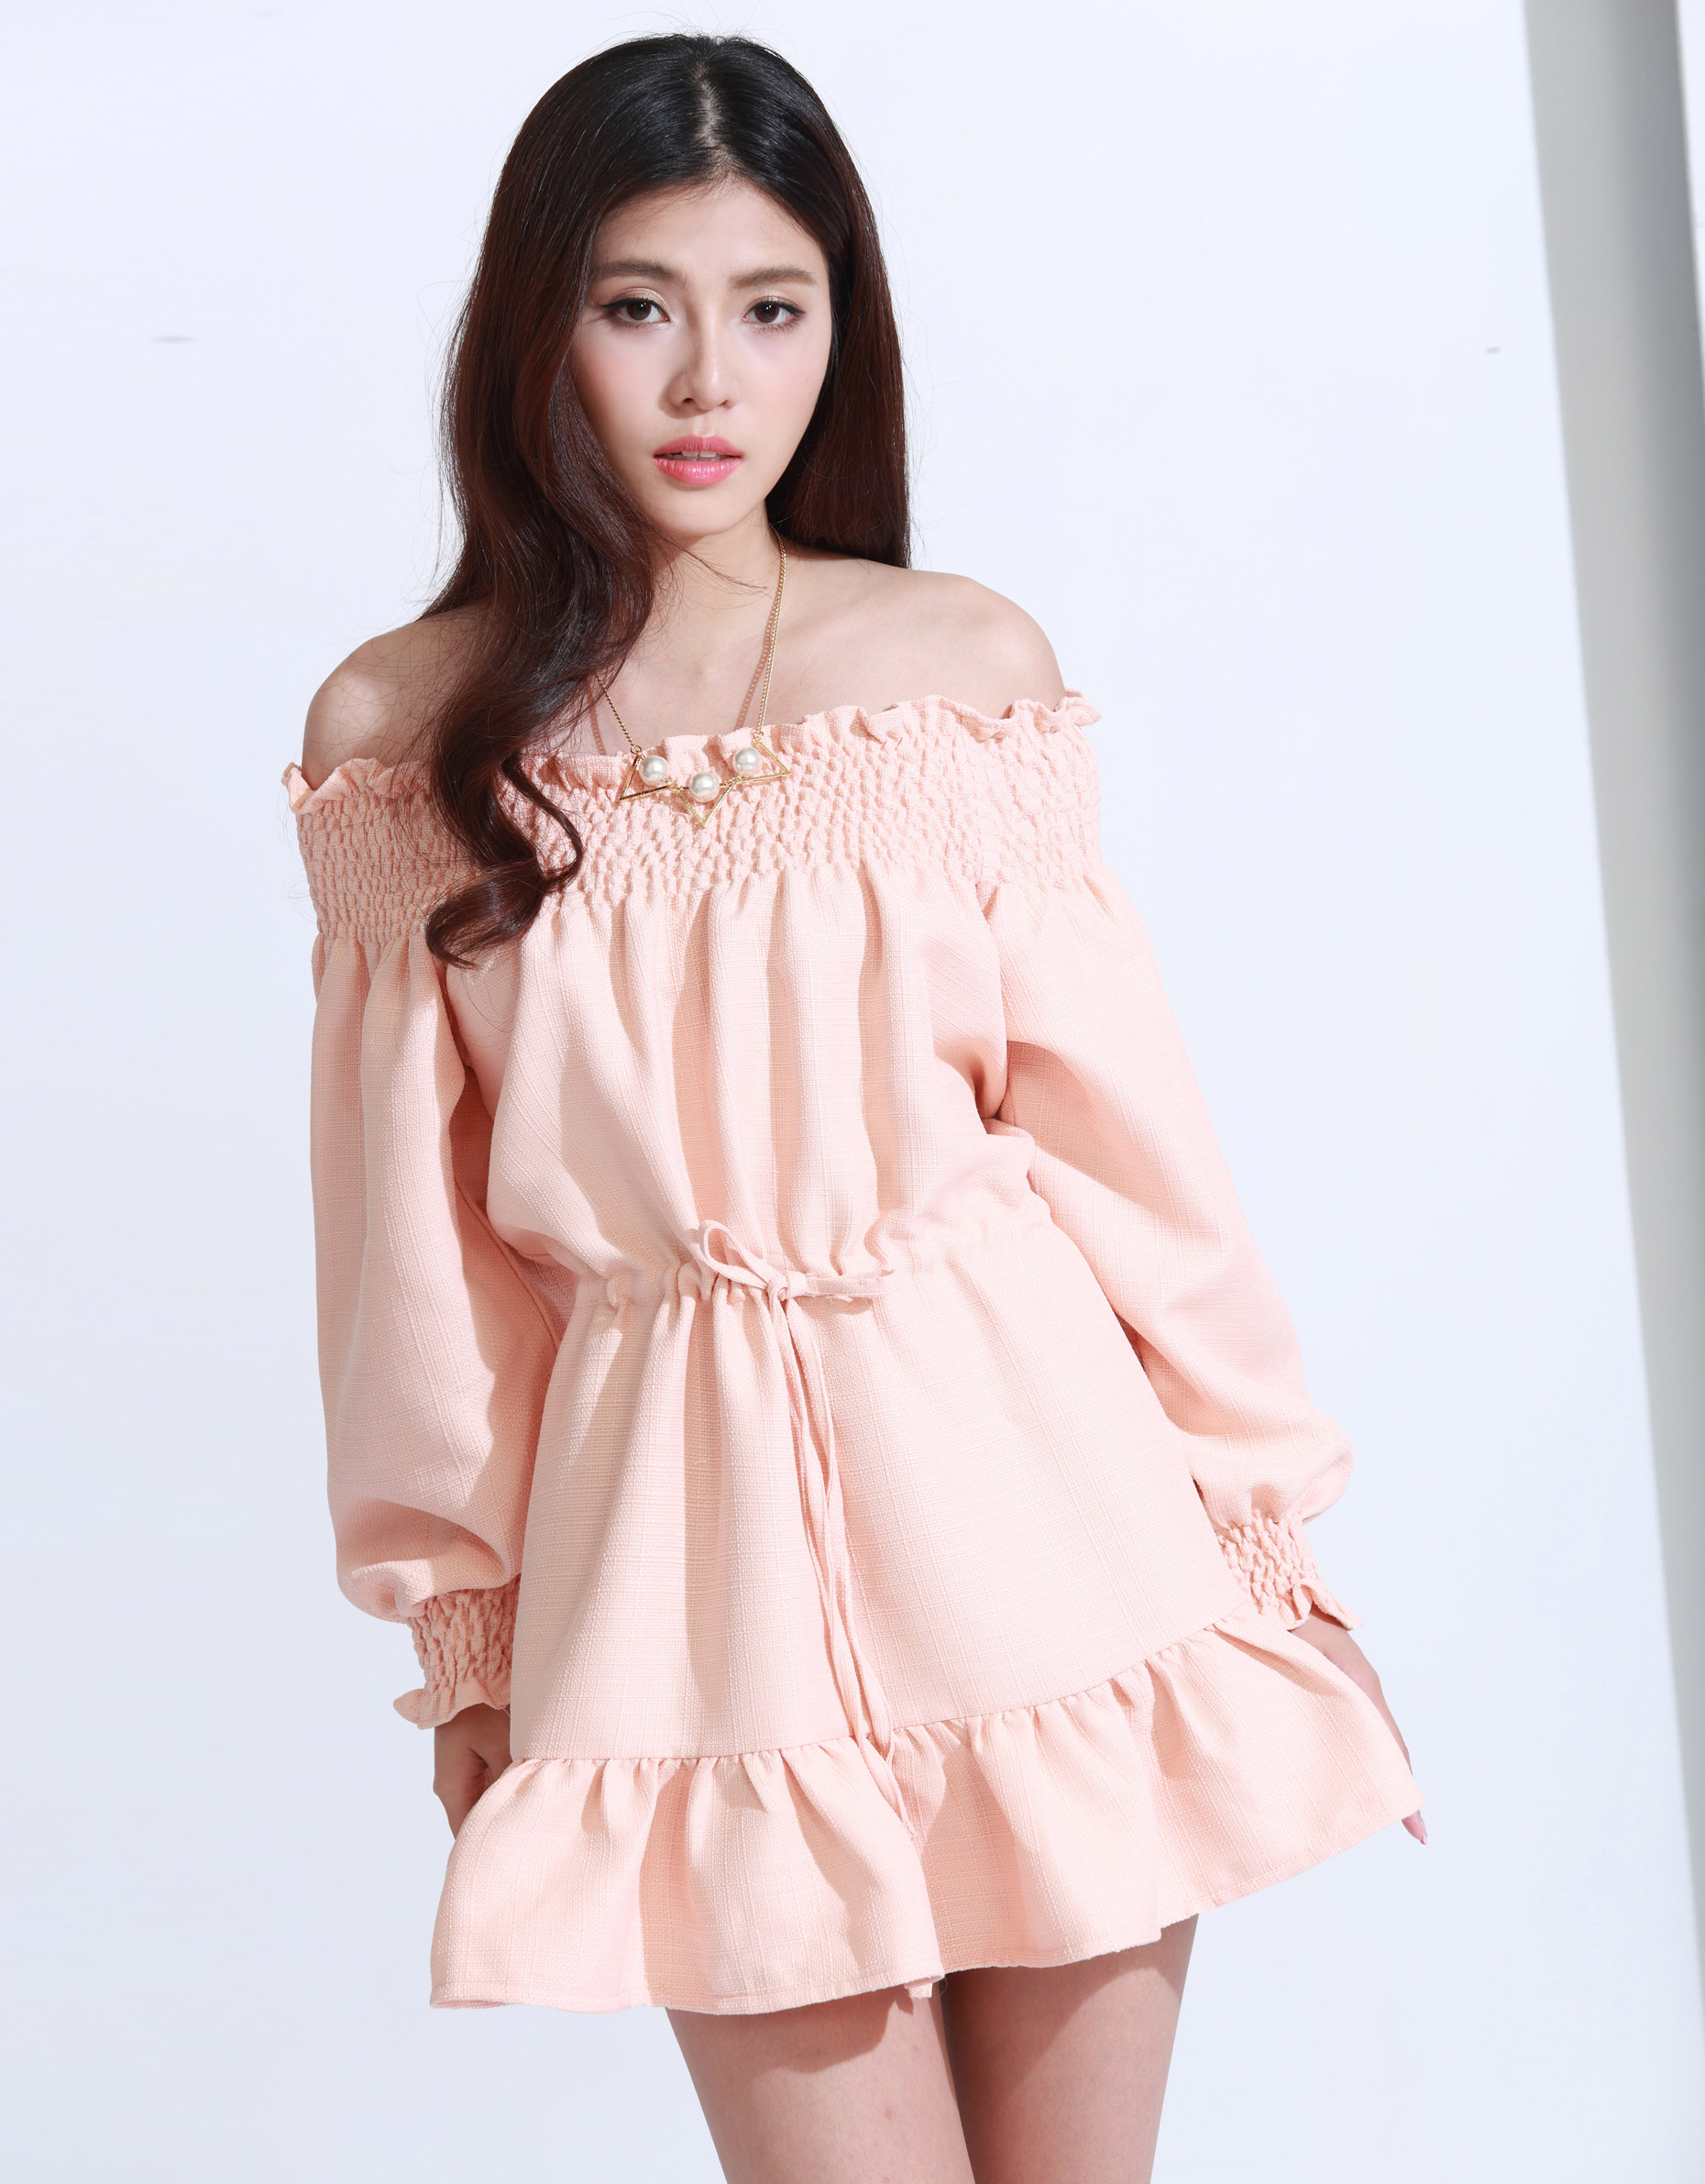 KODZ Womens Pastel Off Shoulder Dress Japanese/Korean Fashion | EBay